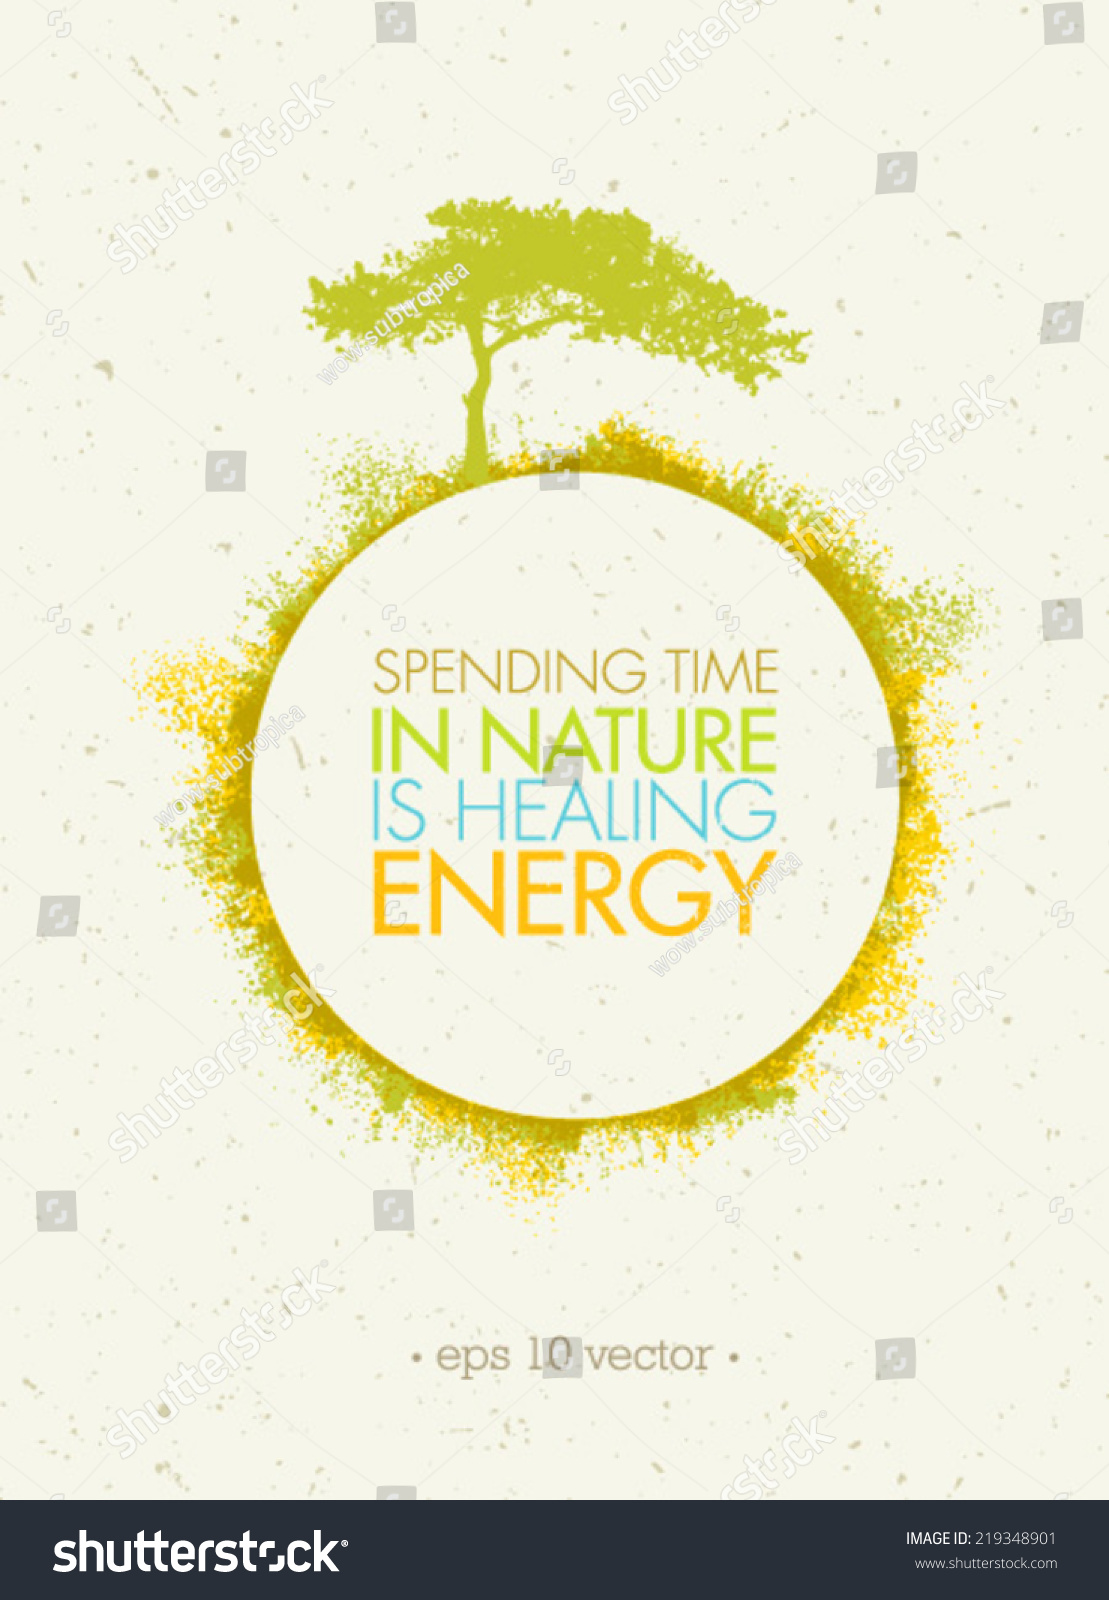 Poster design nature - Spending Time In Nature Is Healing Energy Eco Circle Poster Concept On Paper Background